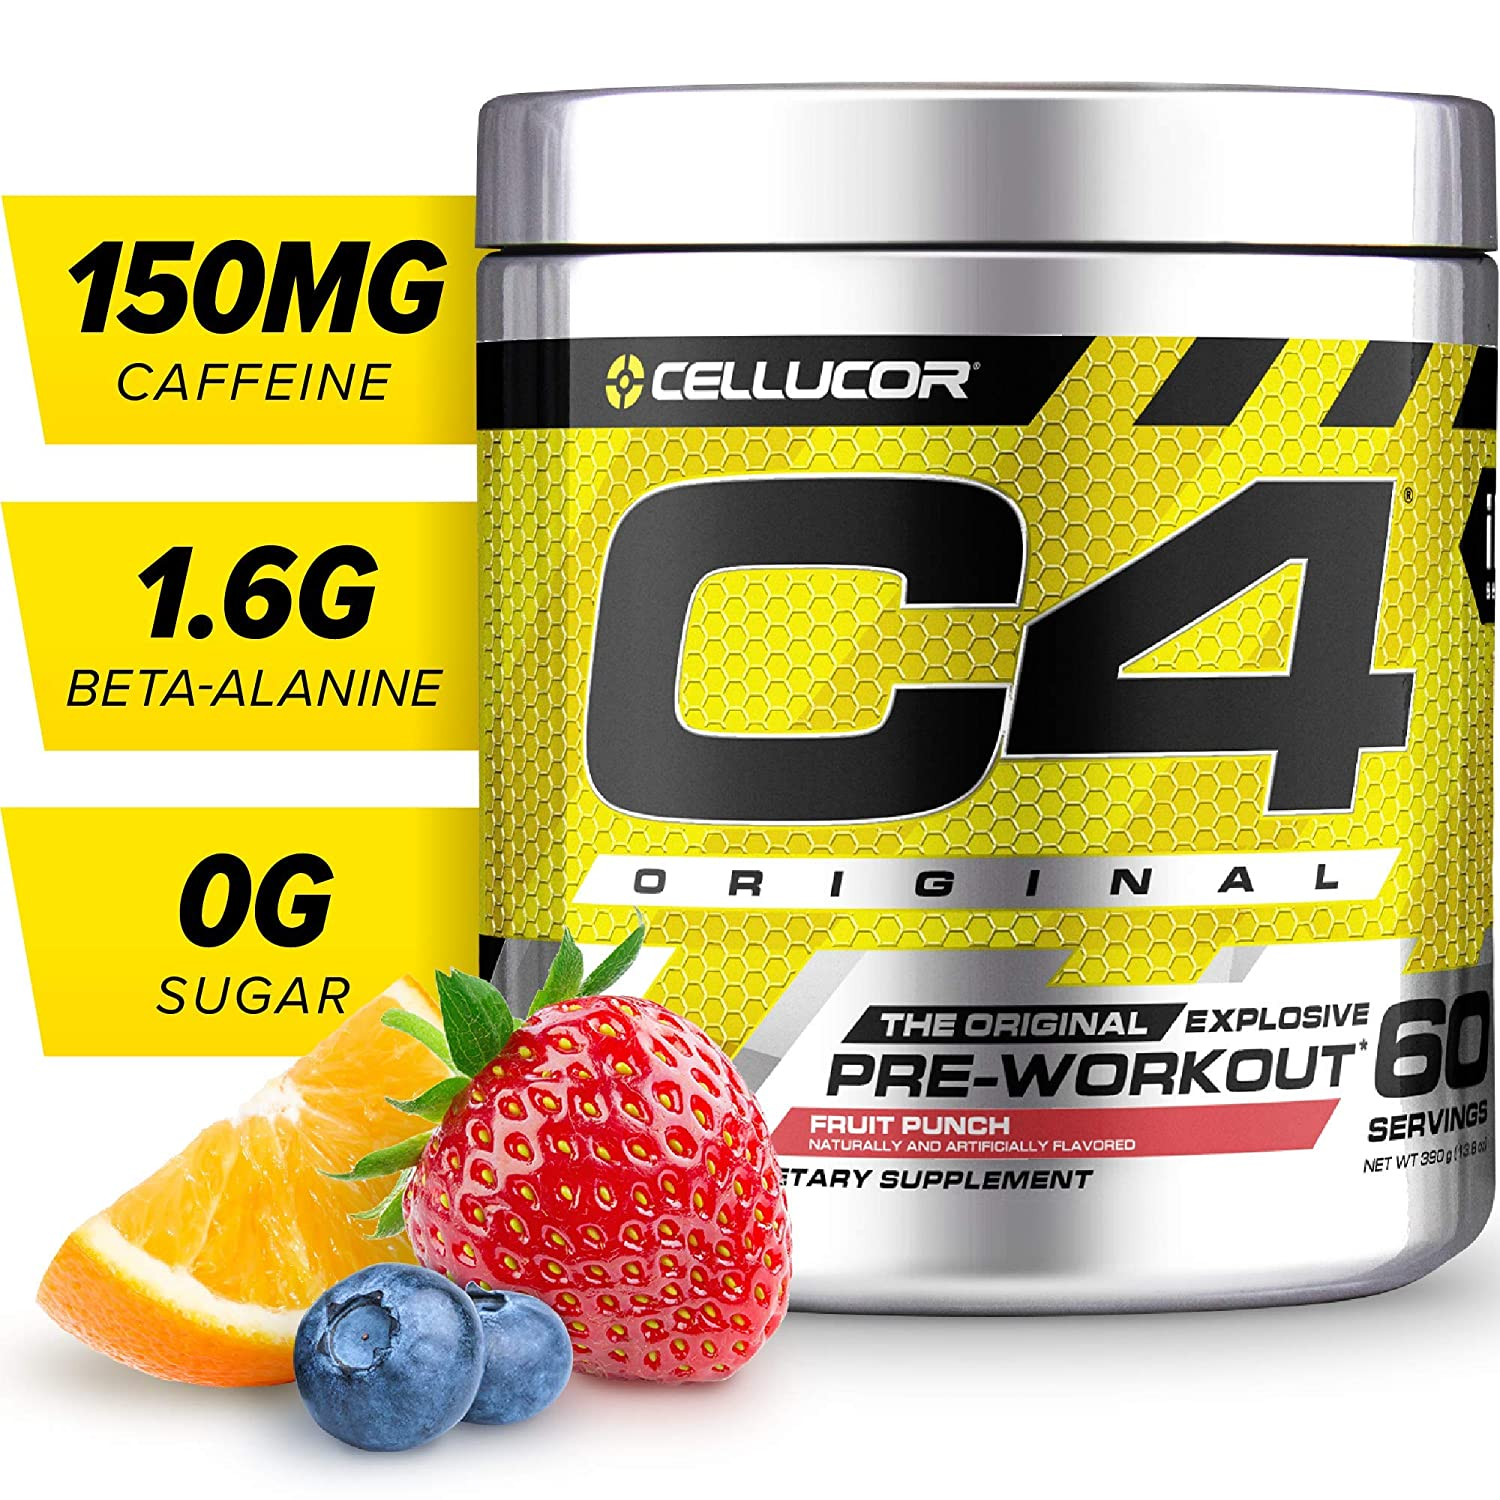 4. Cellucor C4 Pre Workout Supplement